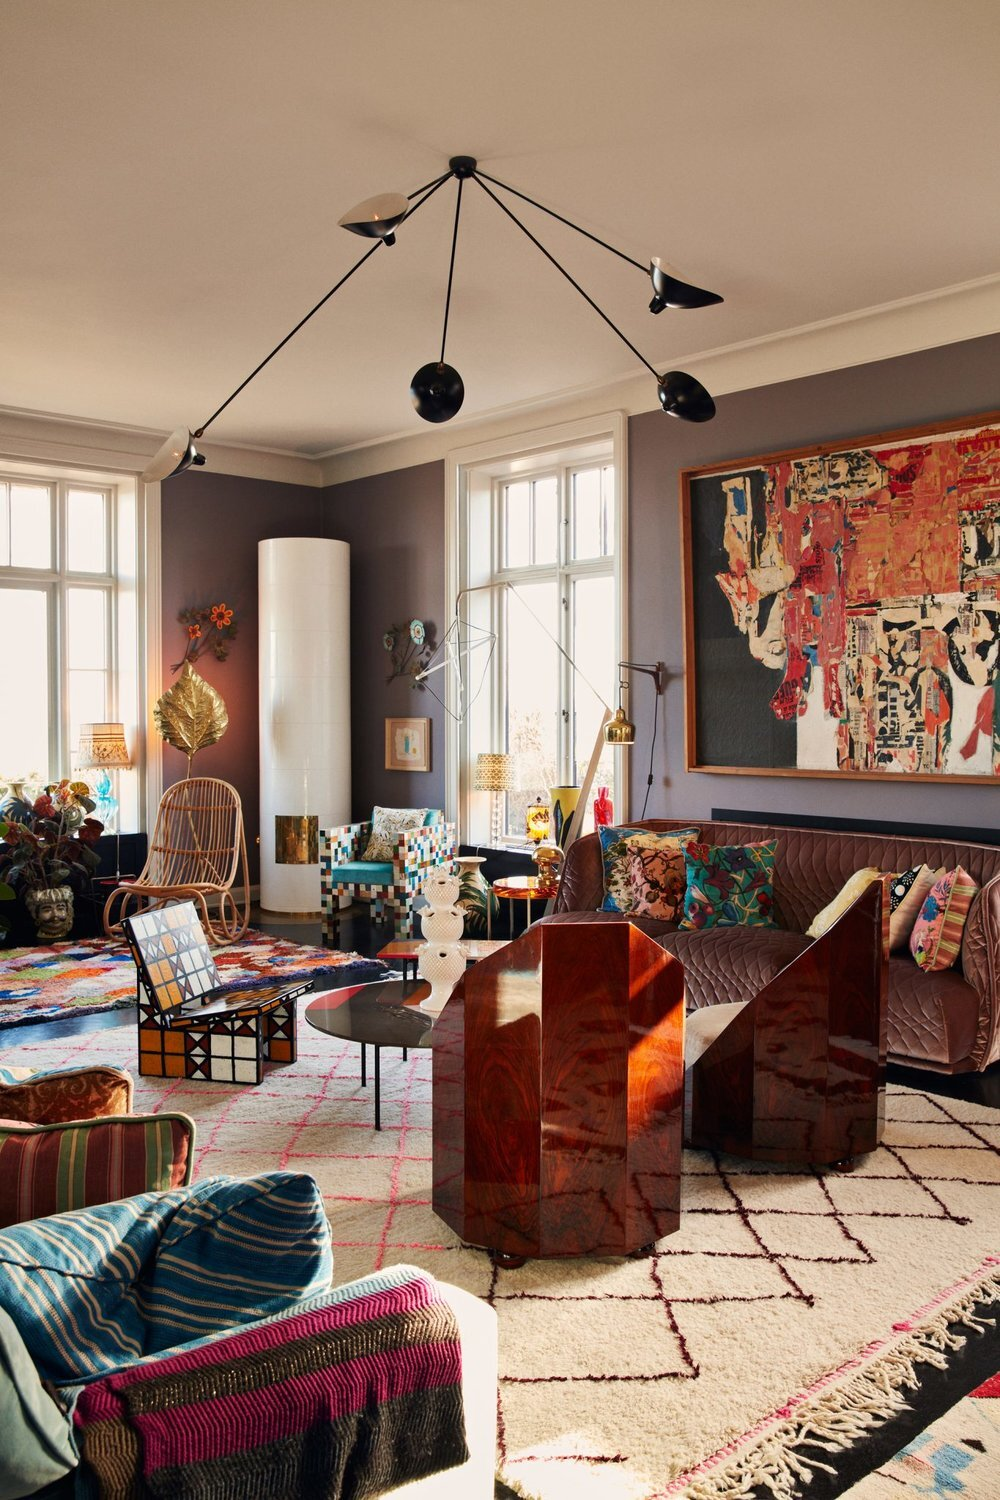 The Color Trends 2021: Warm Comforting Hues & Bright Color Pops - The Nordroom